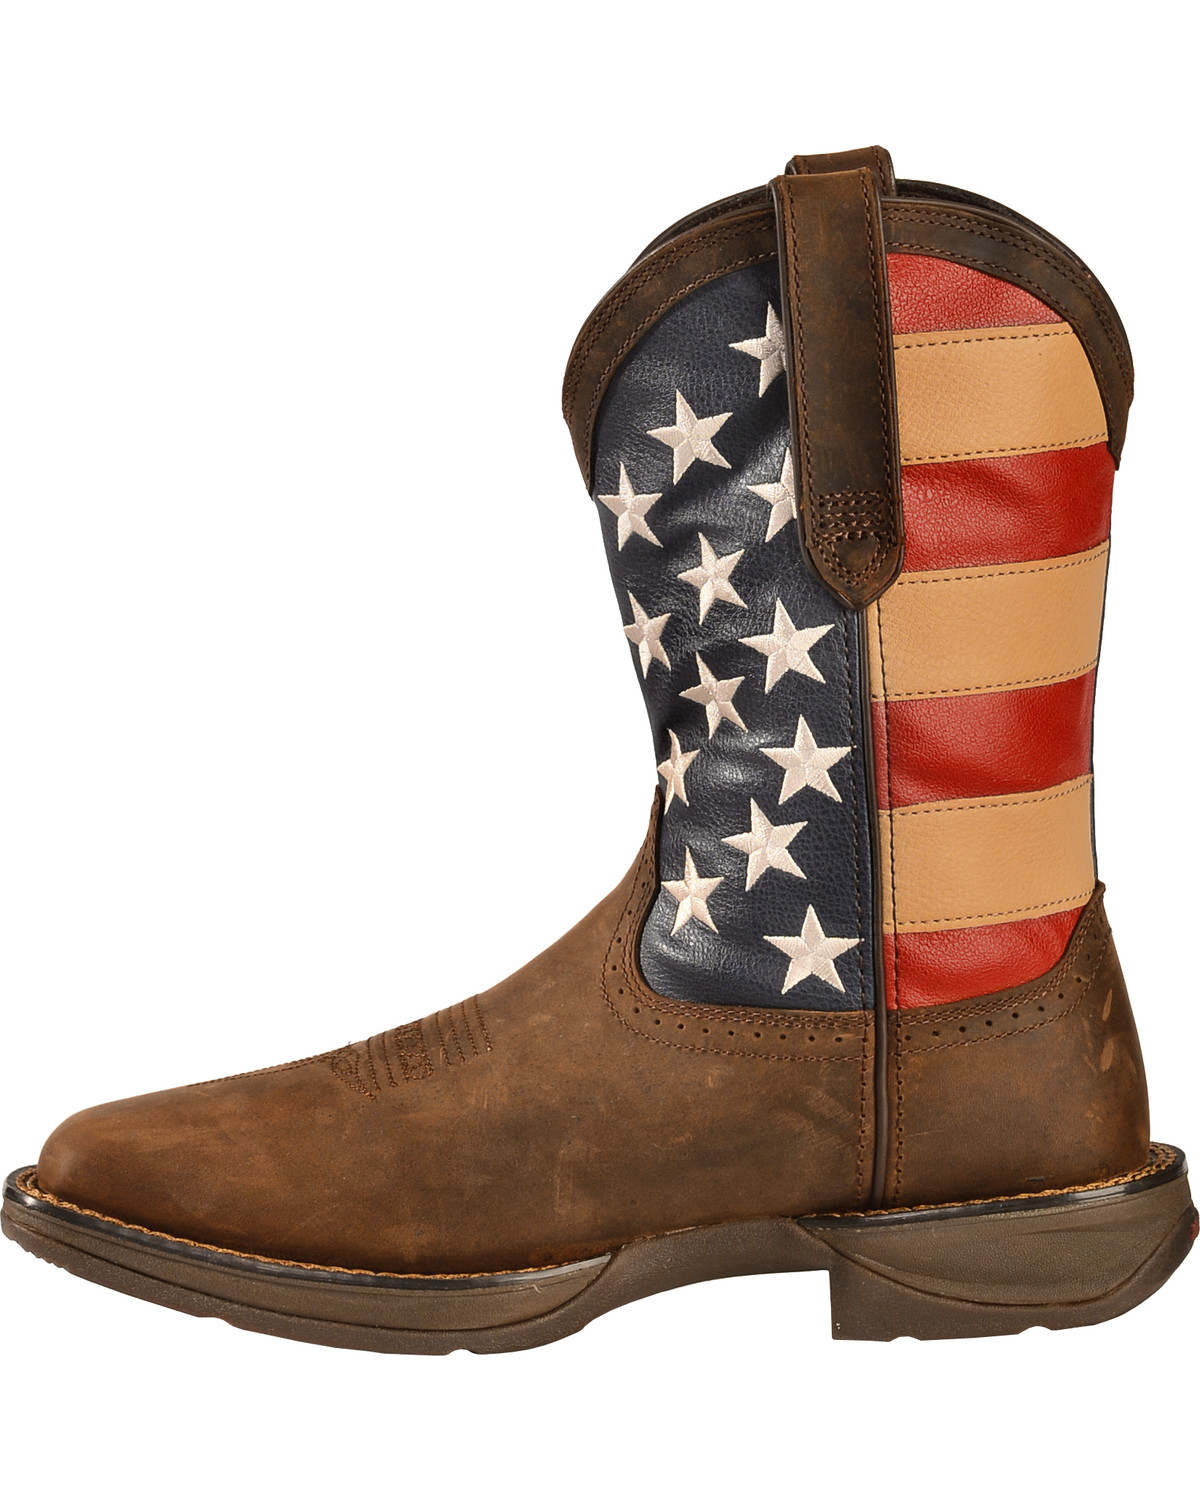 Kids Cowboy Boots and Apparel  Ariat